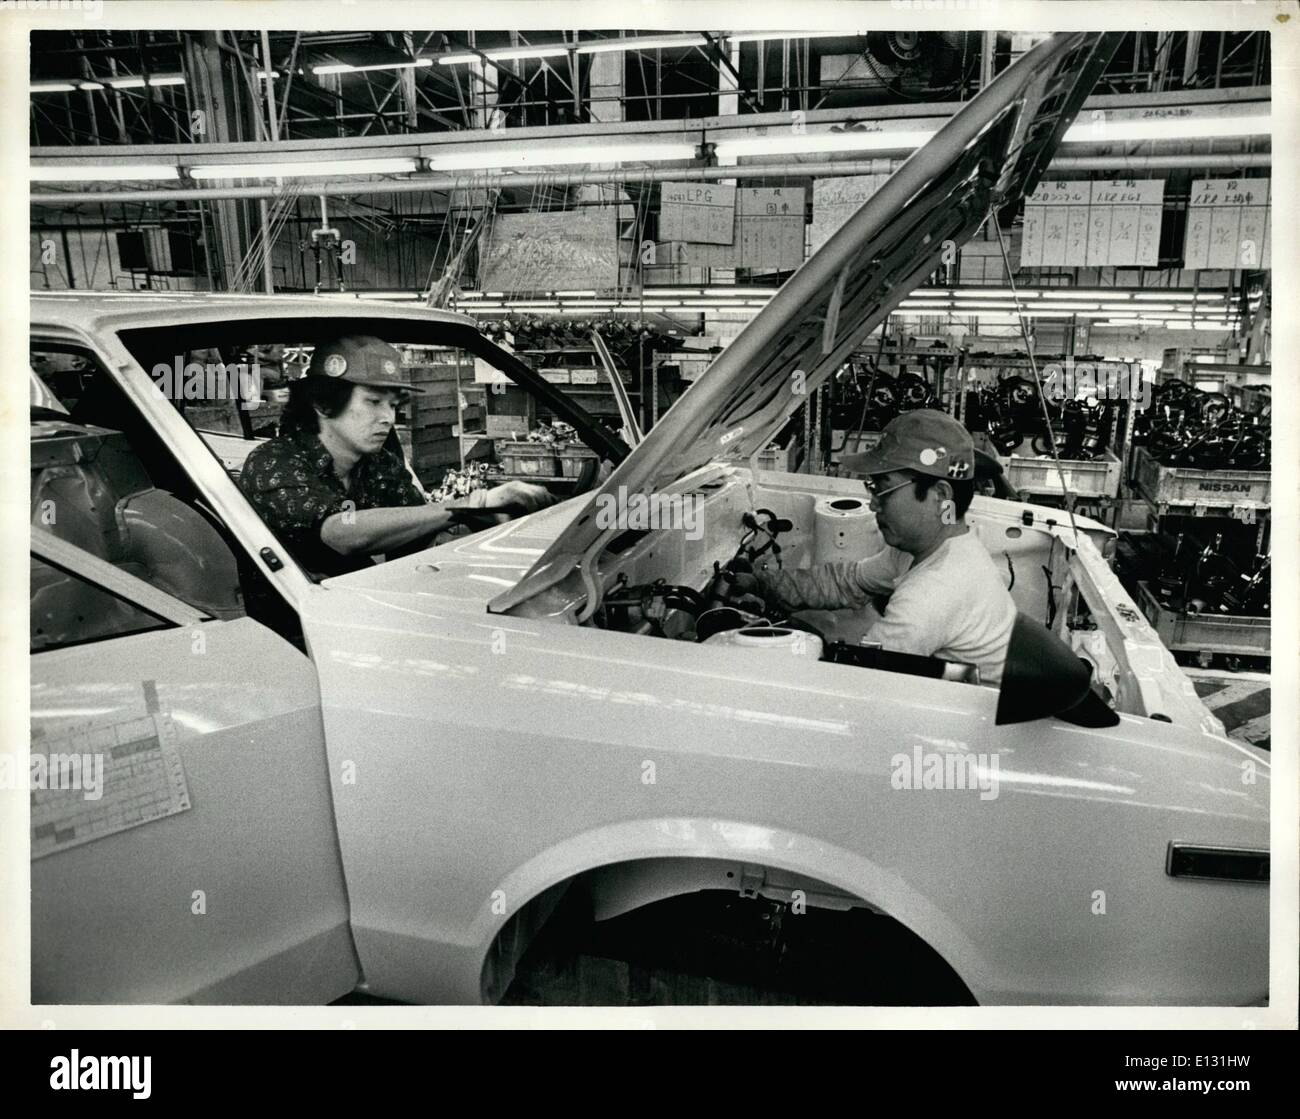 Feb. 26, 2012 - Tuesday, April 10th, 1979. Nissan Motors Oppama Plant, Oppama, Japan. Nissan Motor Co. Ltd. produces three models of Datsun automobiles at their Oppama Plant. The Nissan President, Datsun Bluebird and Datsun 510. OPS: Assemby line workers on the trim line where windshields, front grills, headlights (manufactured by General Electric in the United States) are added to the cars. - Stock Image